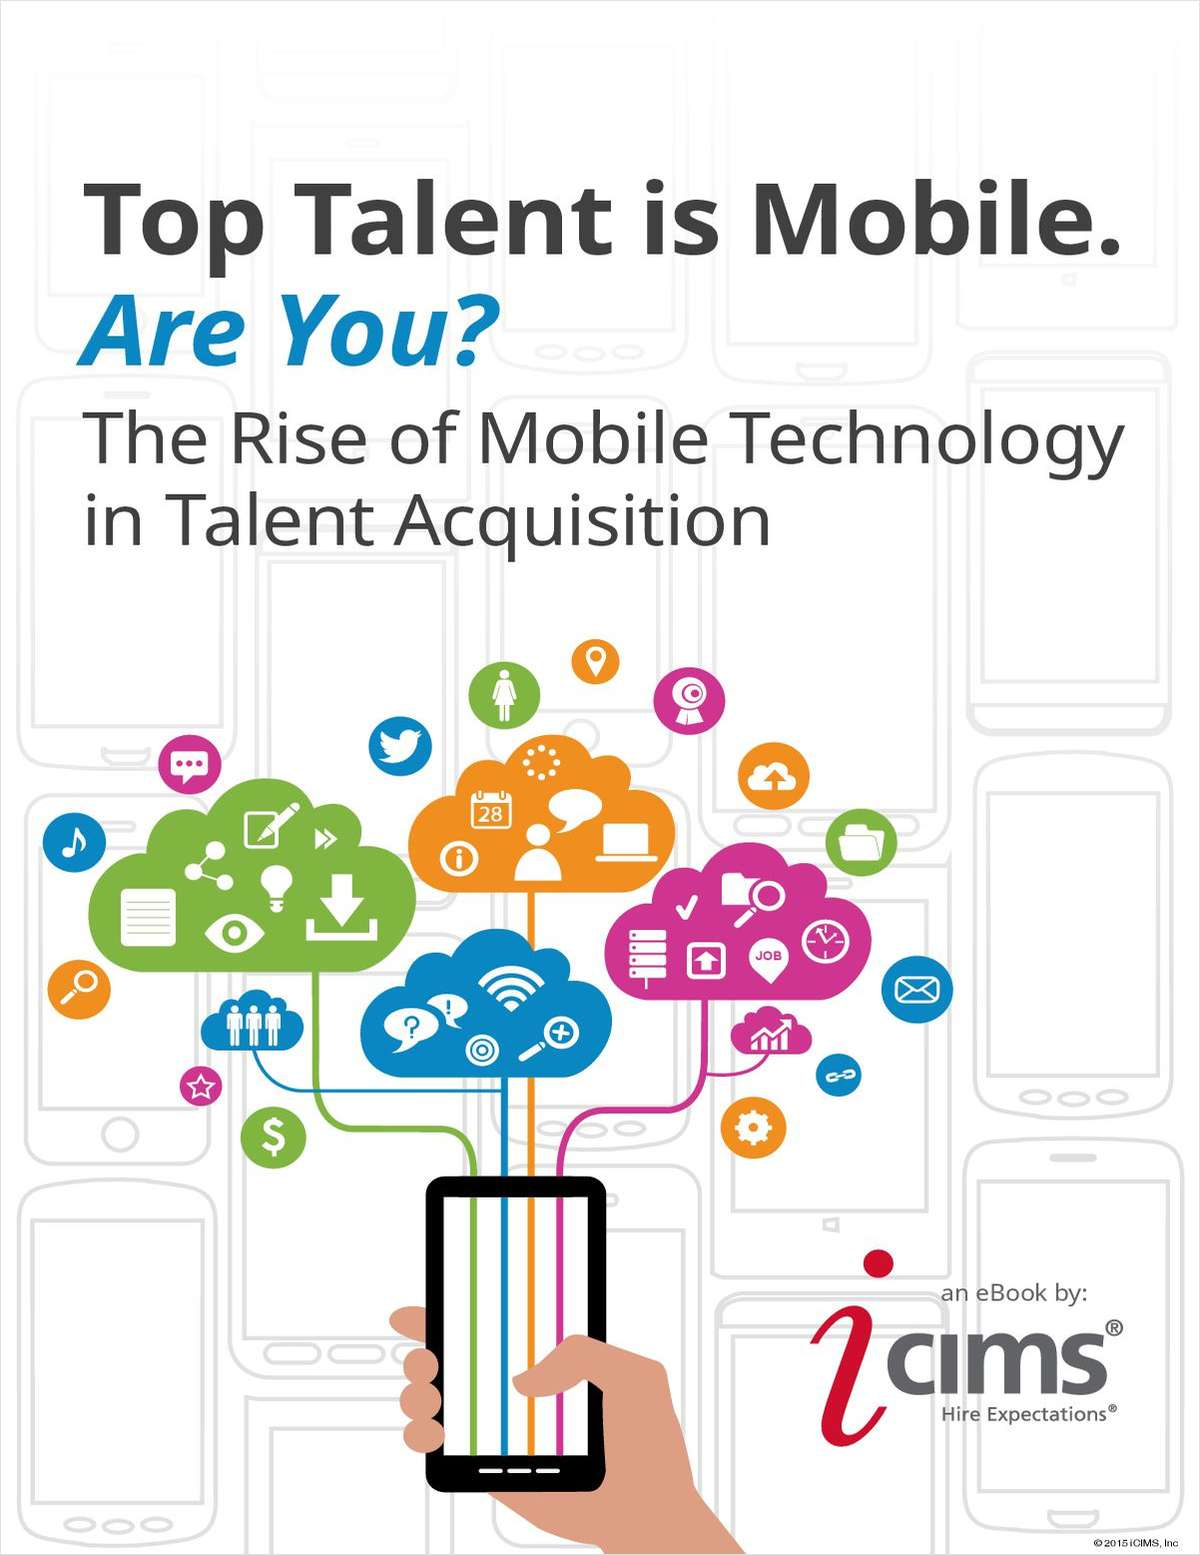 Top Talent is Mobile. Are You?